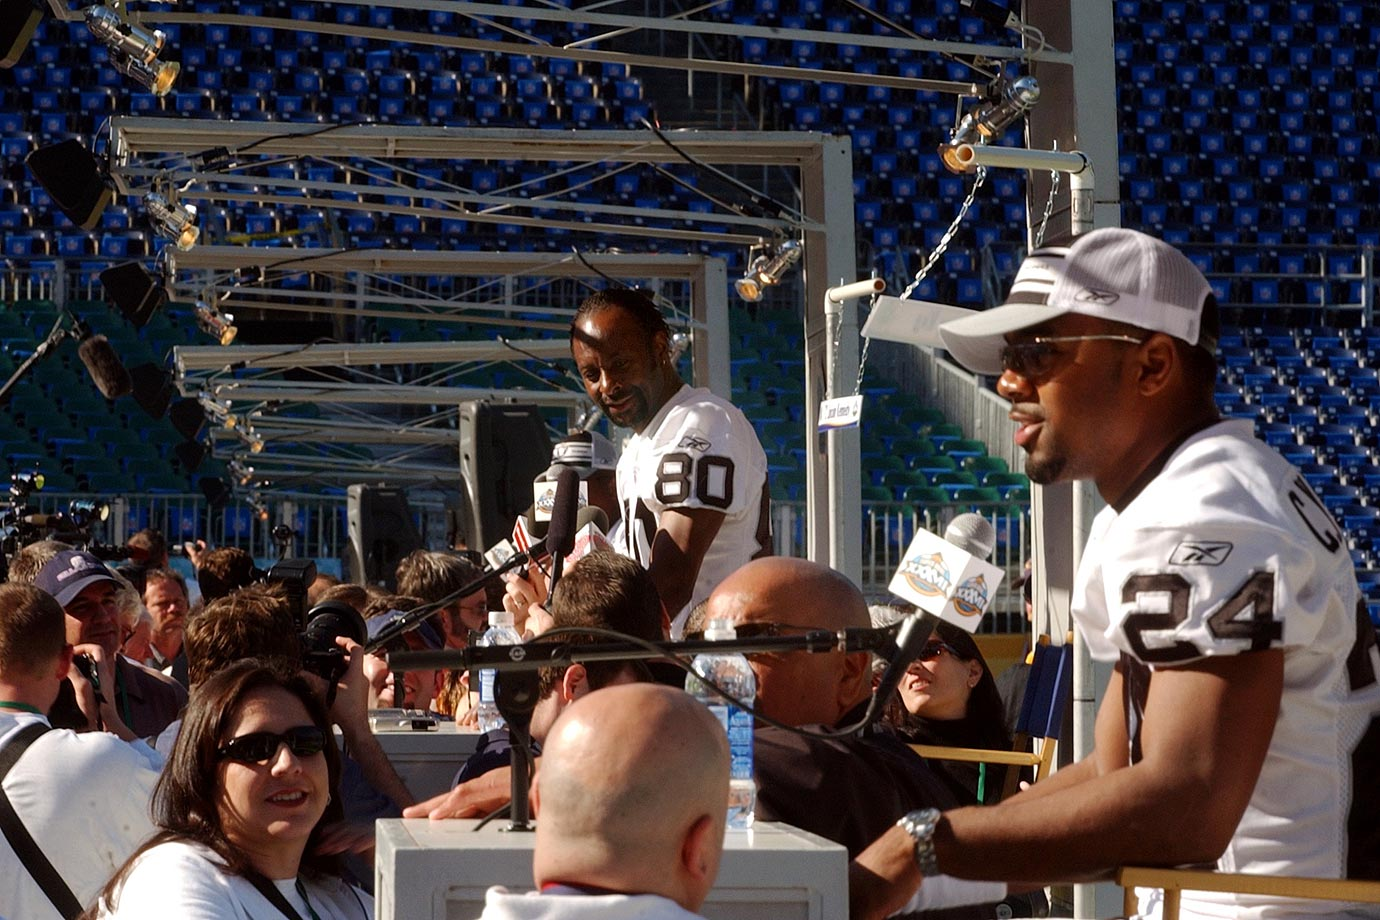 Oakland's Jerry Rice and Charles Woodson answer questions on Media Day for Super Bowl XXXVII in San Diego.  The Raiders were crushed by the Buccaneers, 48-21.